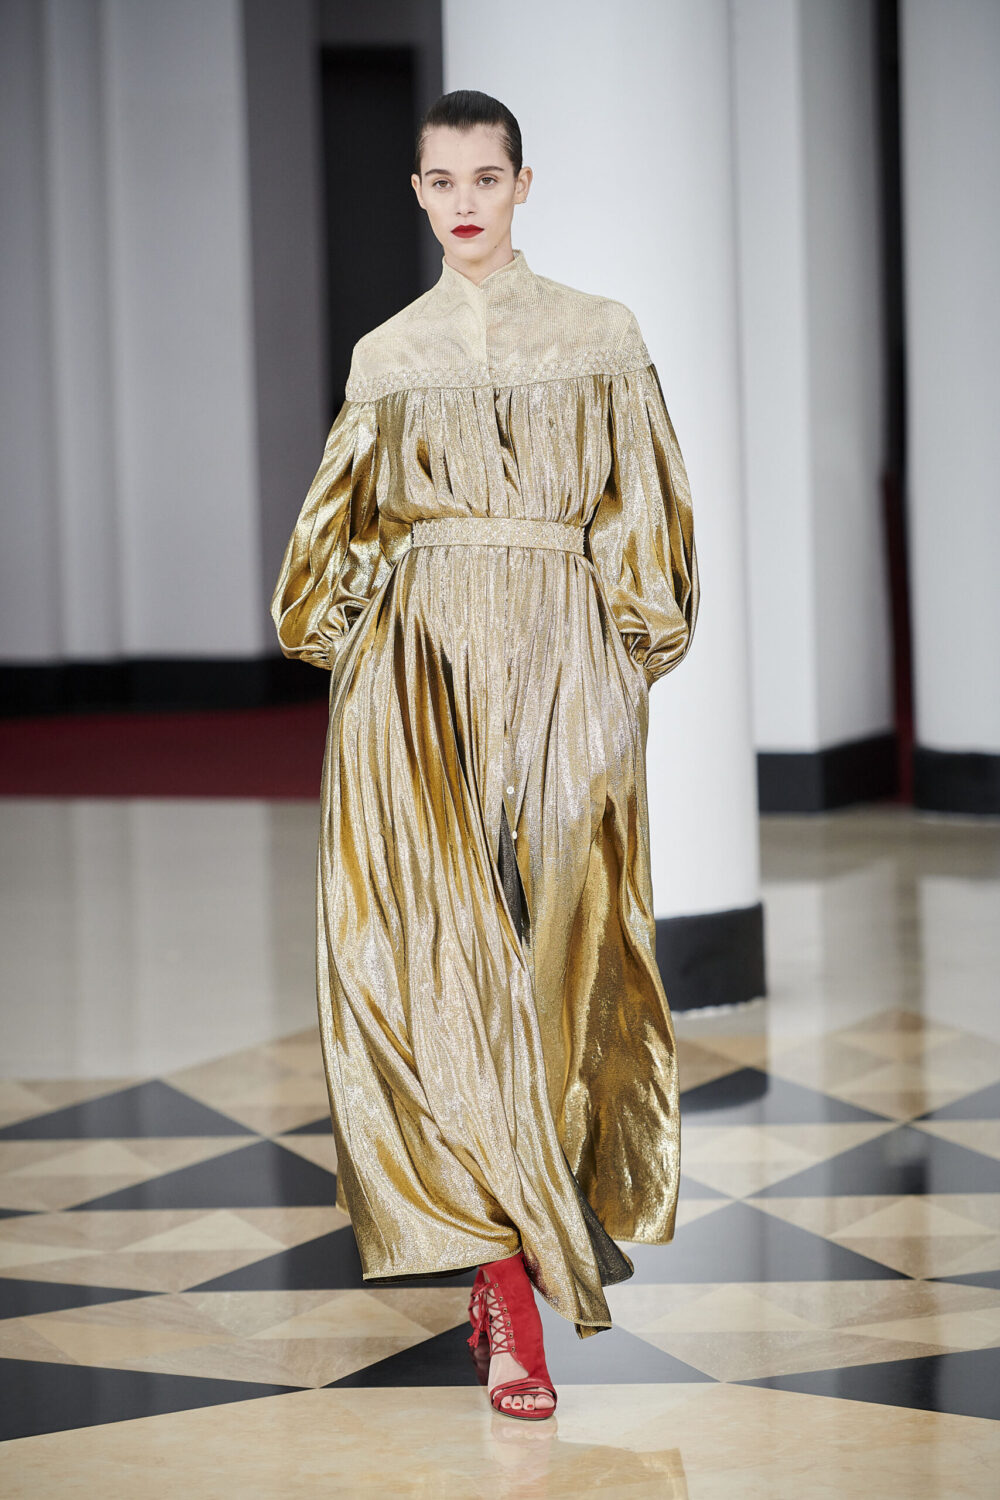 Alexis Mabille Spring 2021 Couture Collection Runway I Dreaminlace.com #couture #luxuryfashion